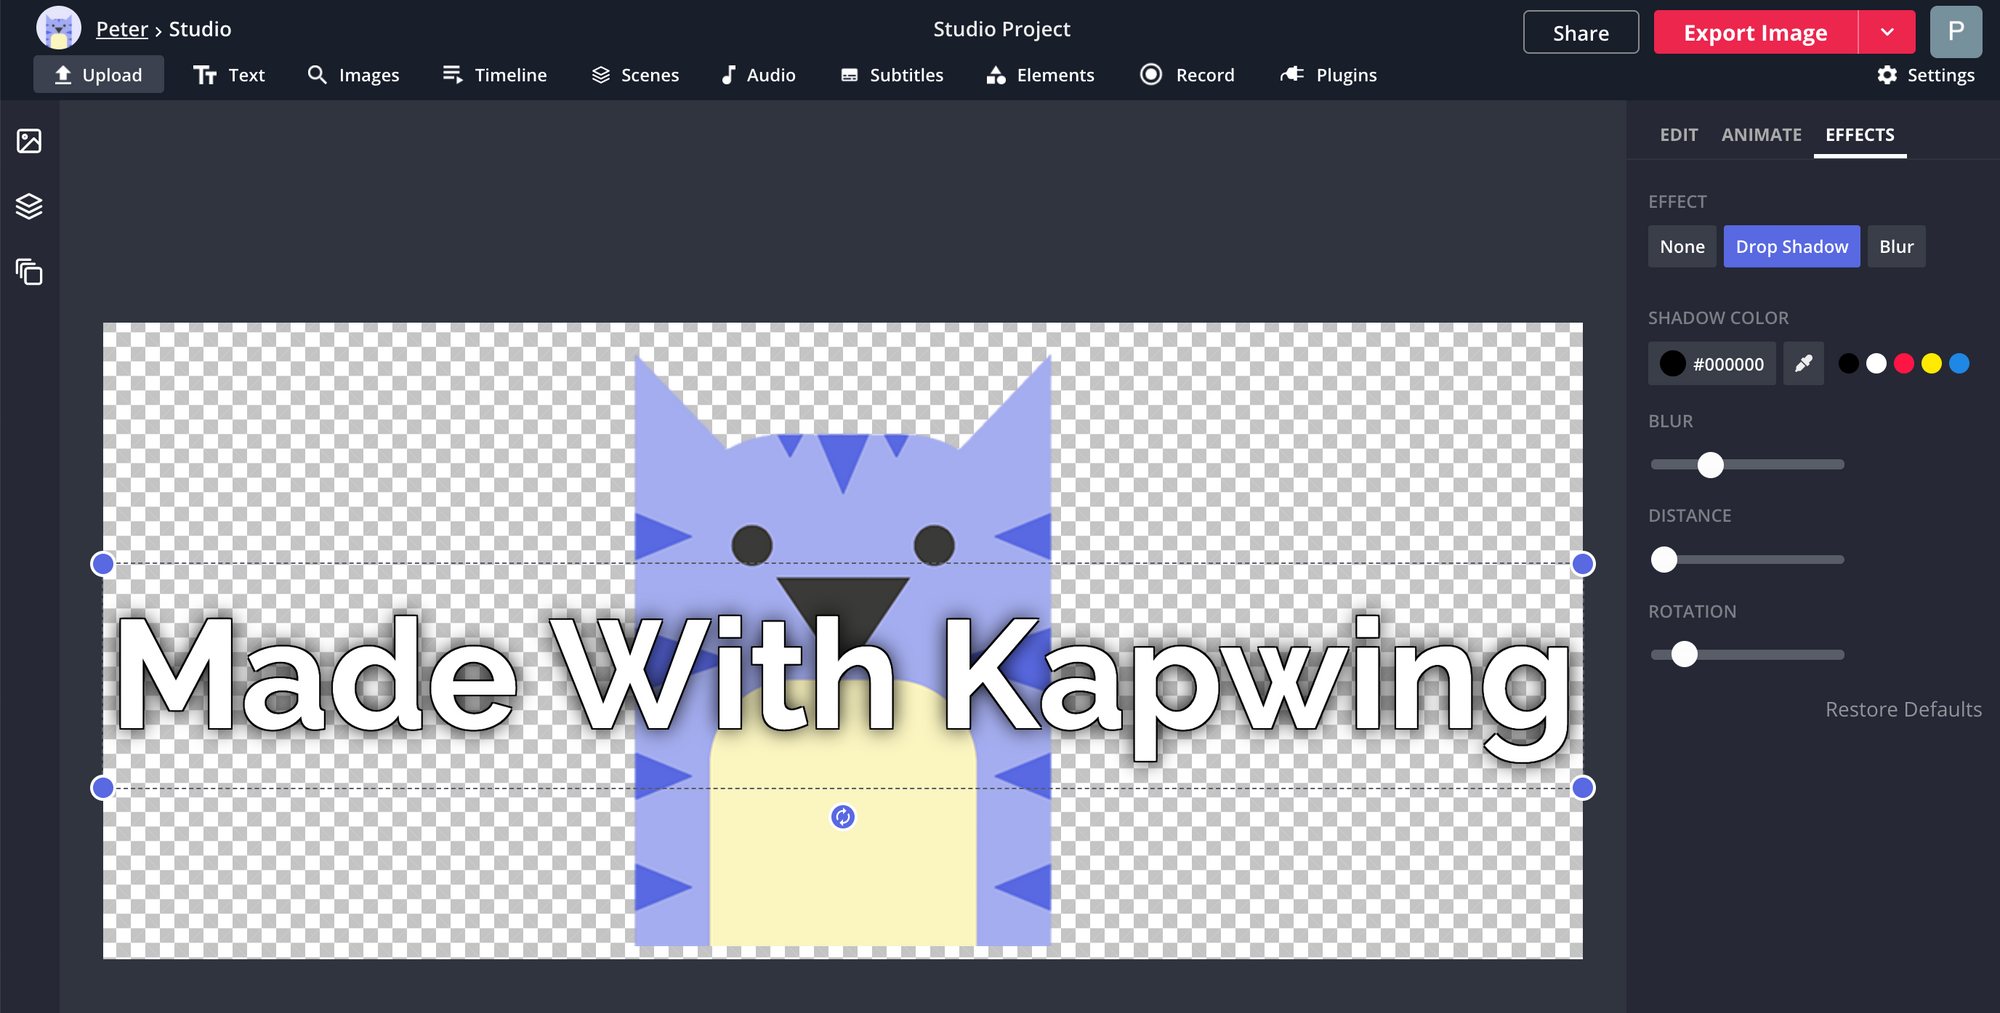 A screenshot showing how to add text in the Kapwing Studio.